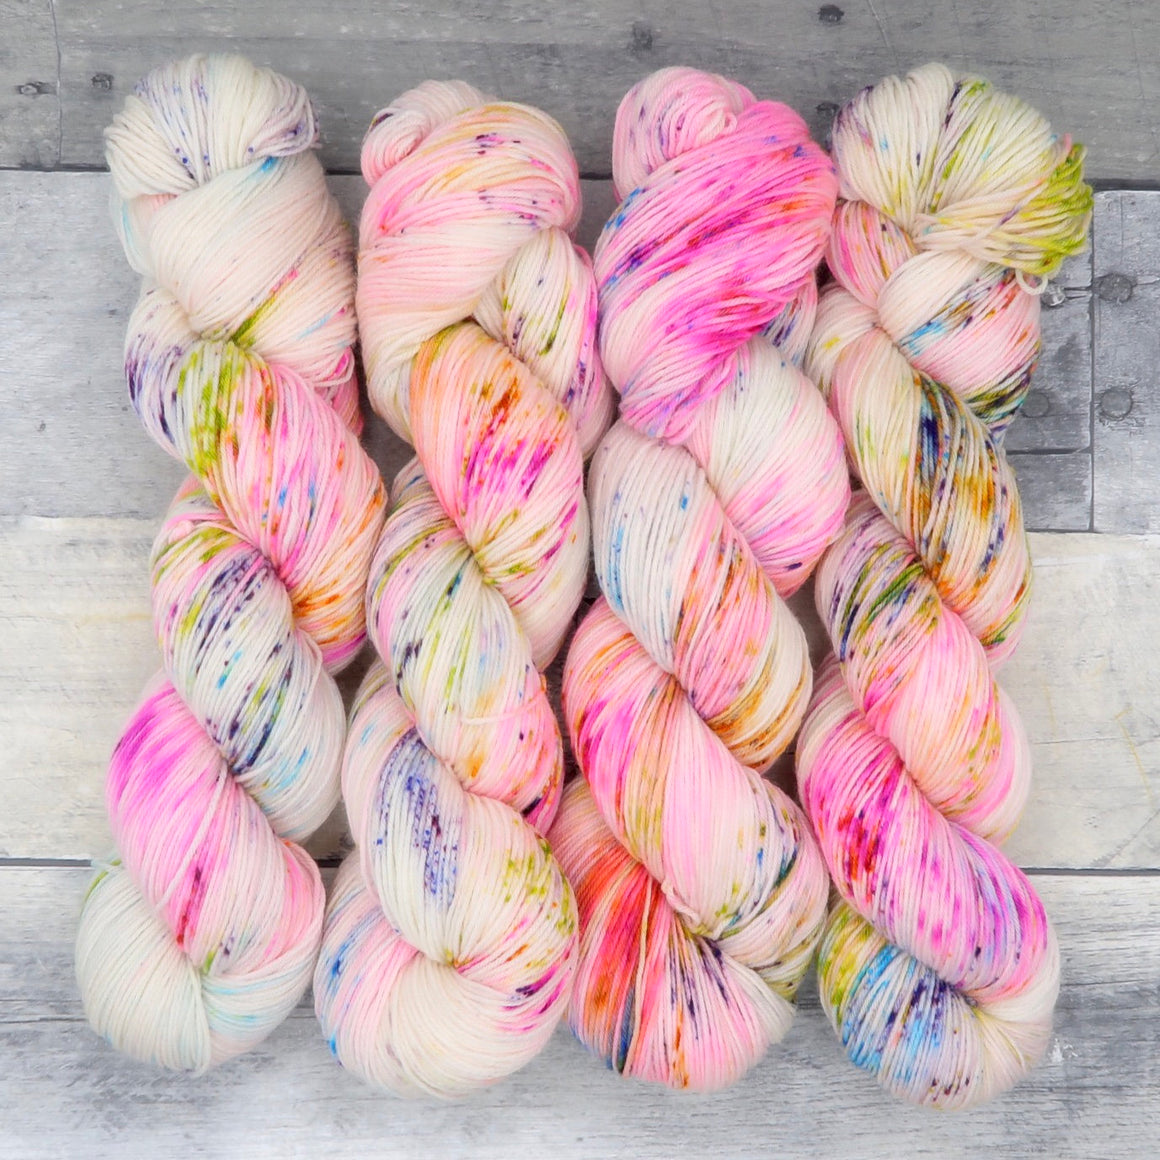 Bright-Bow - (Everyday Sock - variegated, speckle) - full fluorescent spectrum, a bright rainbow